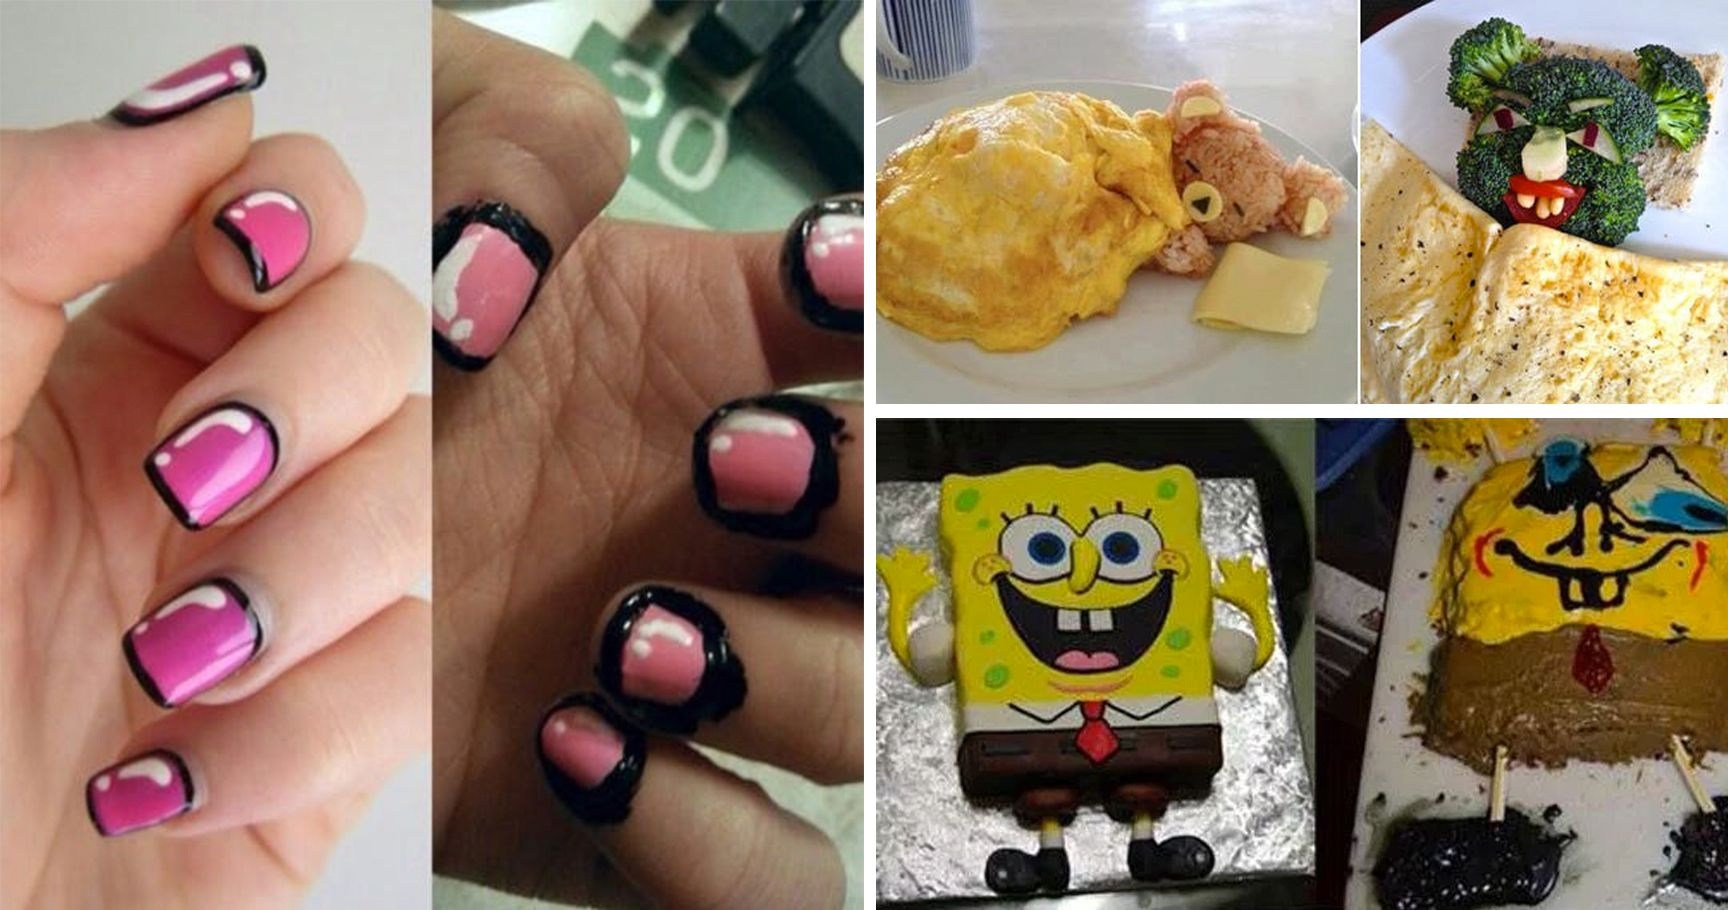 15 Of The Most Disastrous Pinterest Fails To Ever Grace The Internet